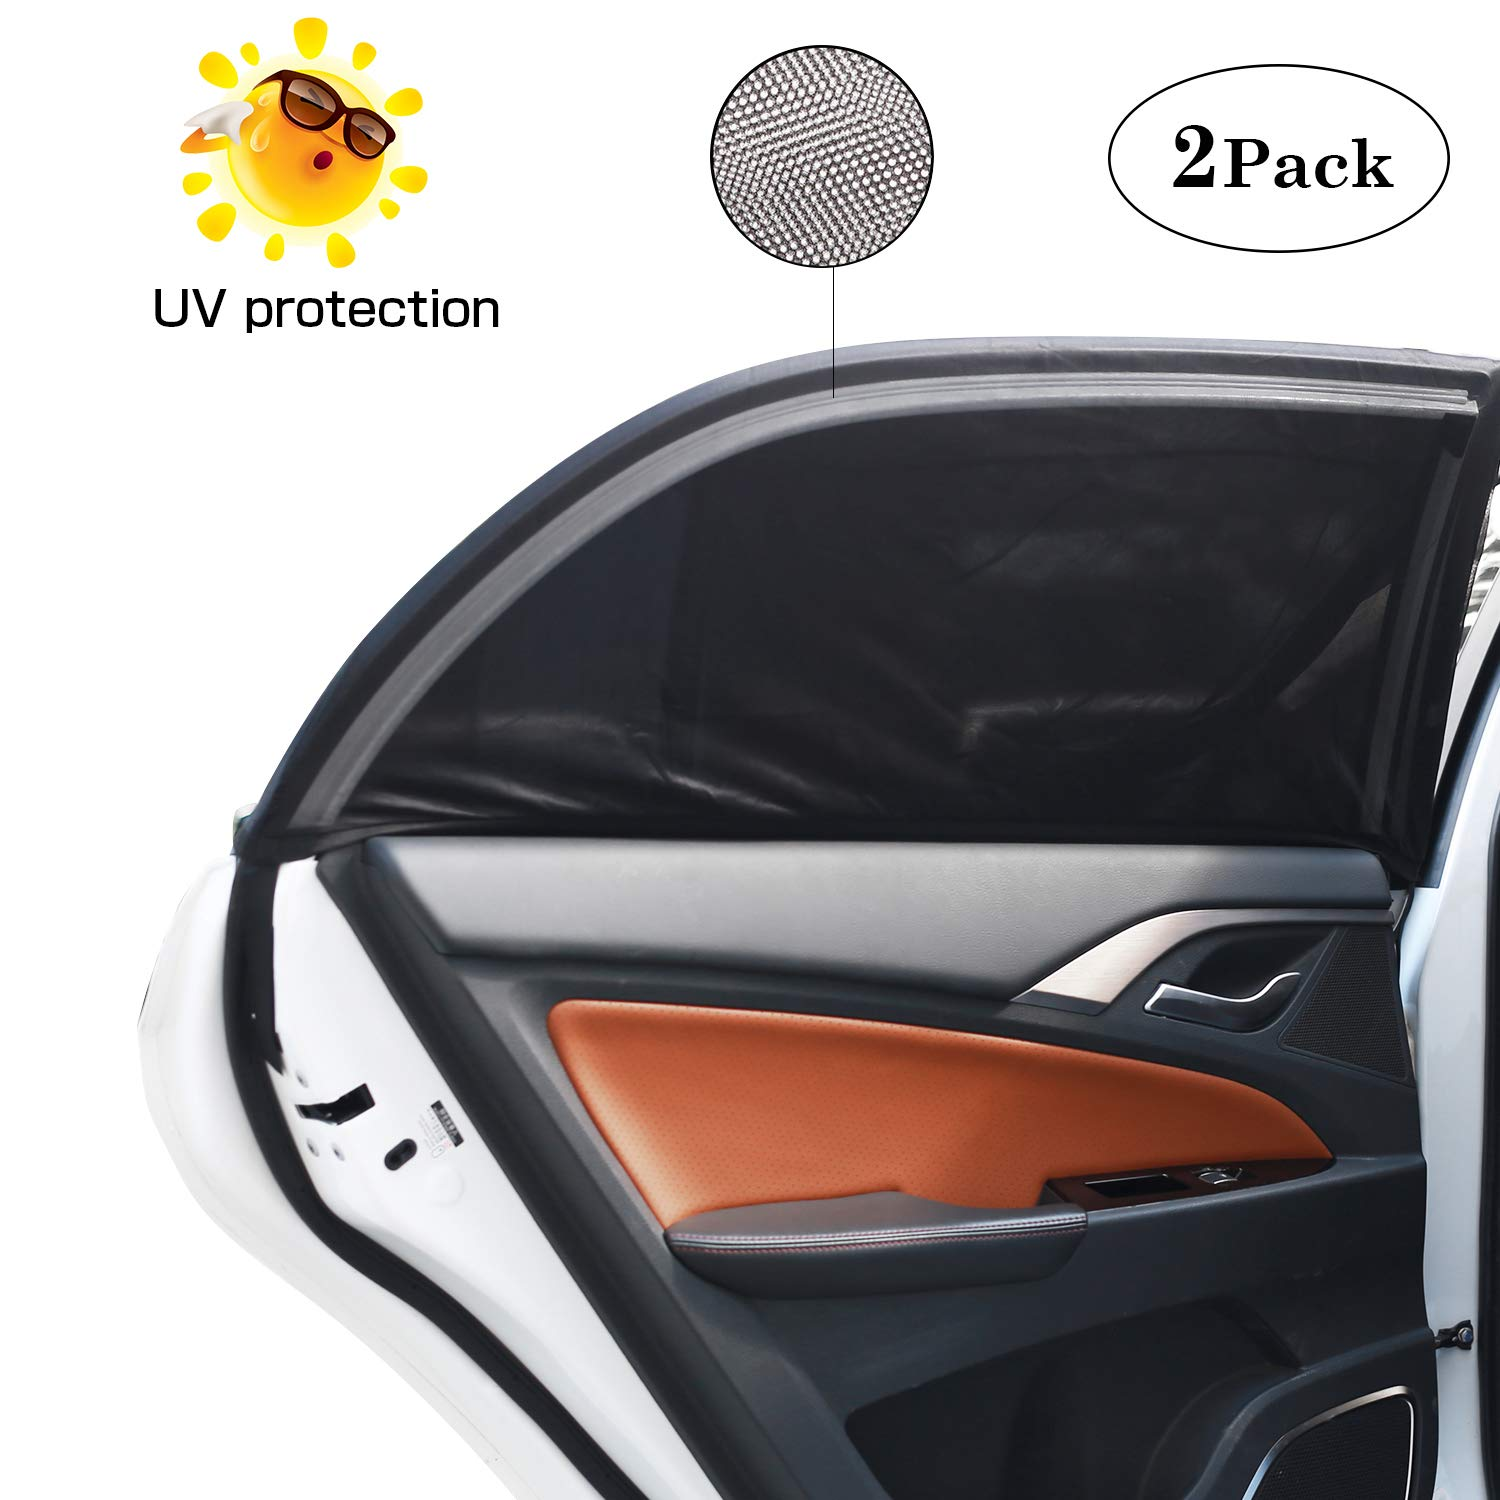 bedee Car Sun Shade, 2 Pack Car Window Shades |Block UV Rays| Cover Rear Side Window| Car Sun Shades for Baby Universal Fit Stretch Size: 49.6X20.5 inch